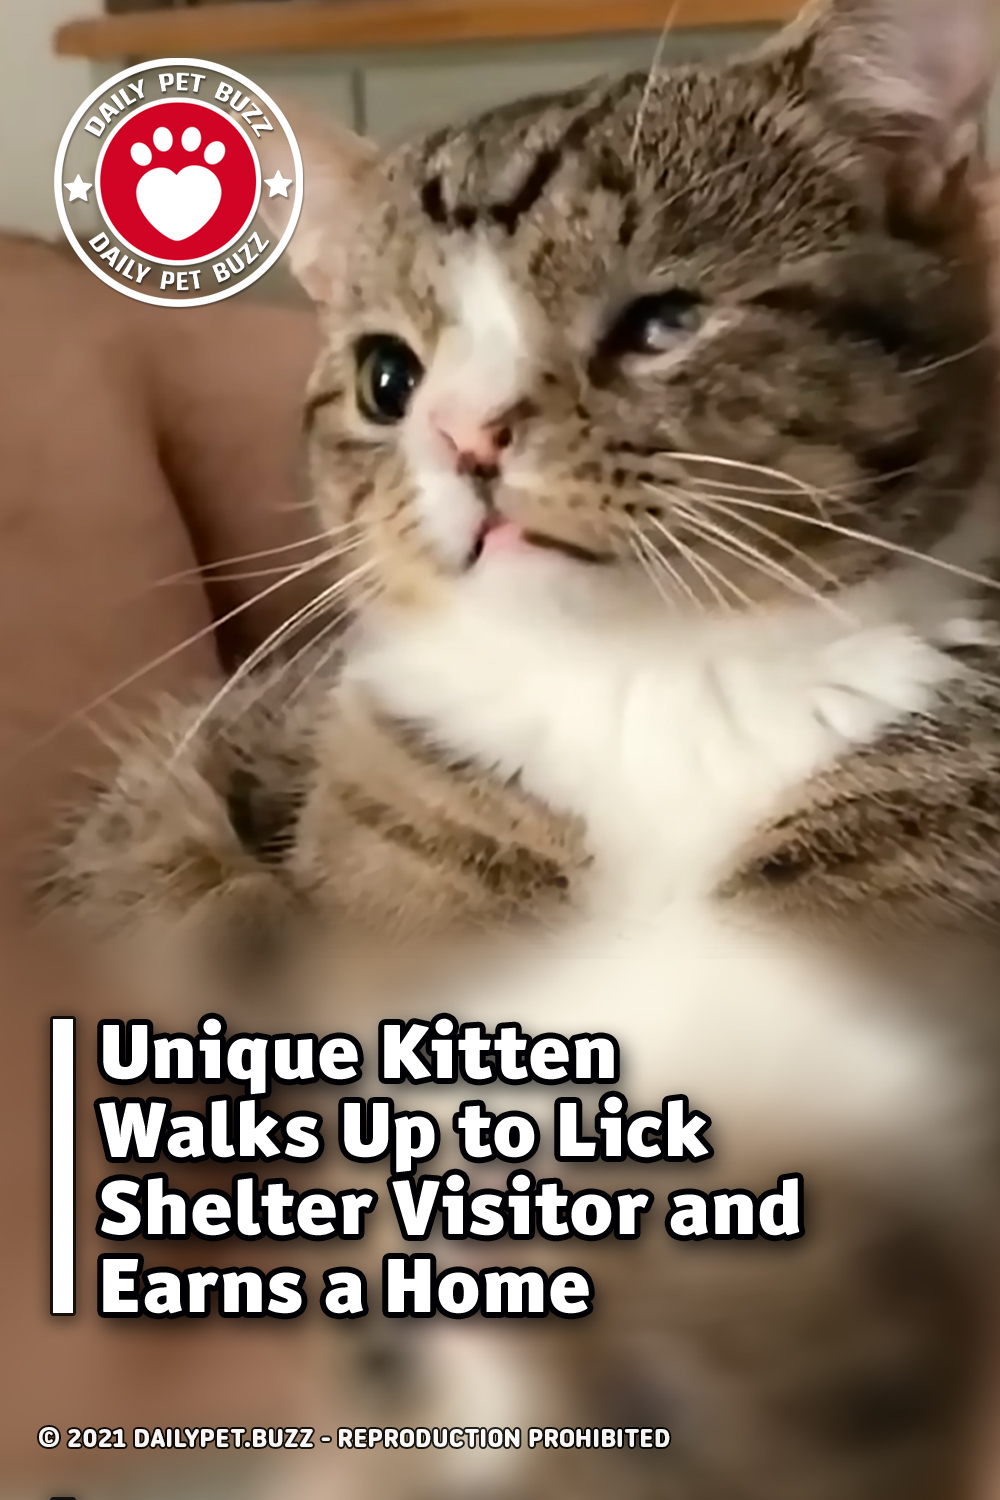 Unique Kitten Walks Up to Lick Shelter Visitor and Earns a Home